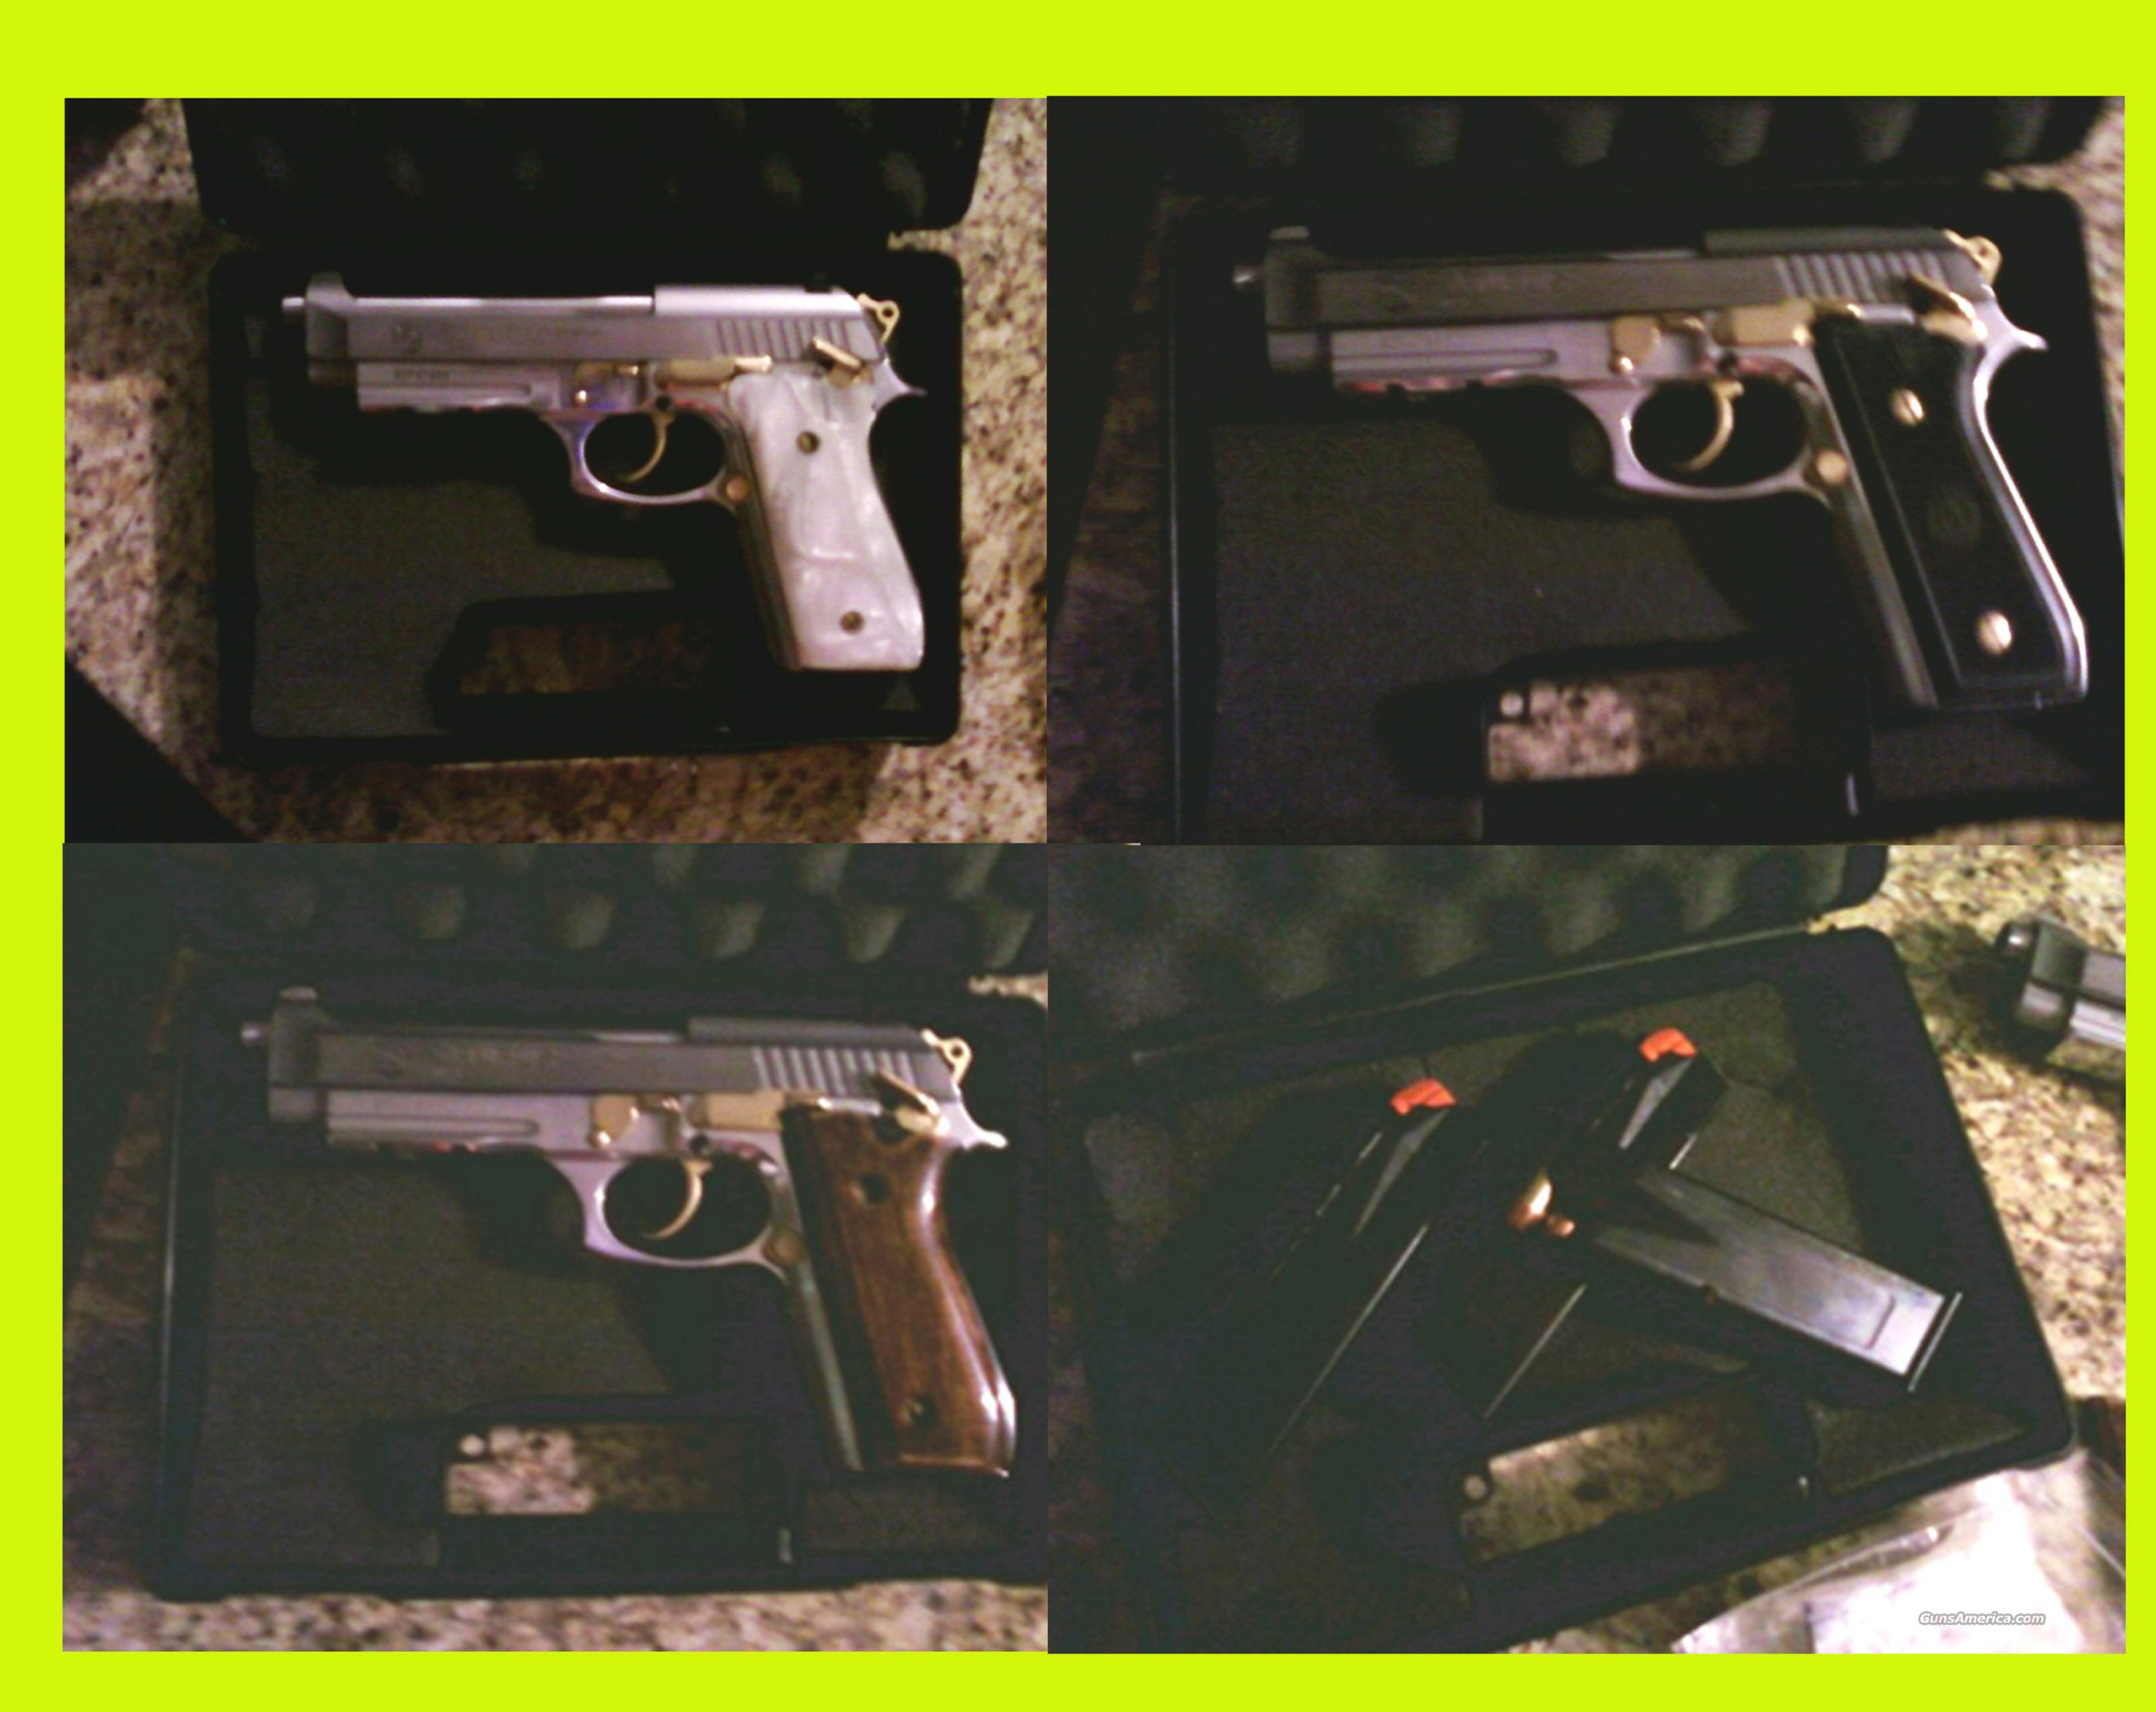 Like NEW - Taurus PT100 .40 S&W Mutiple grips (pearl, wood, black) with Gold Accents w/ Rail (PT 100 - 3 Mags)  Guns > Pistols > Taurus Pistols/Revolvers > Pistols > Steel Frame